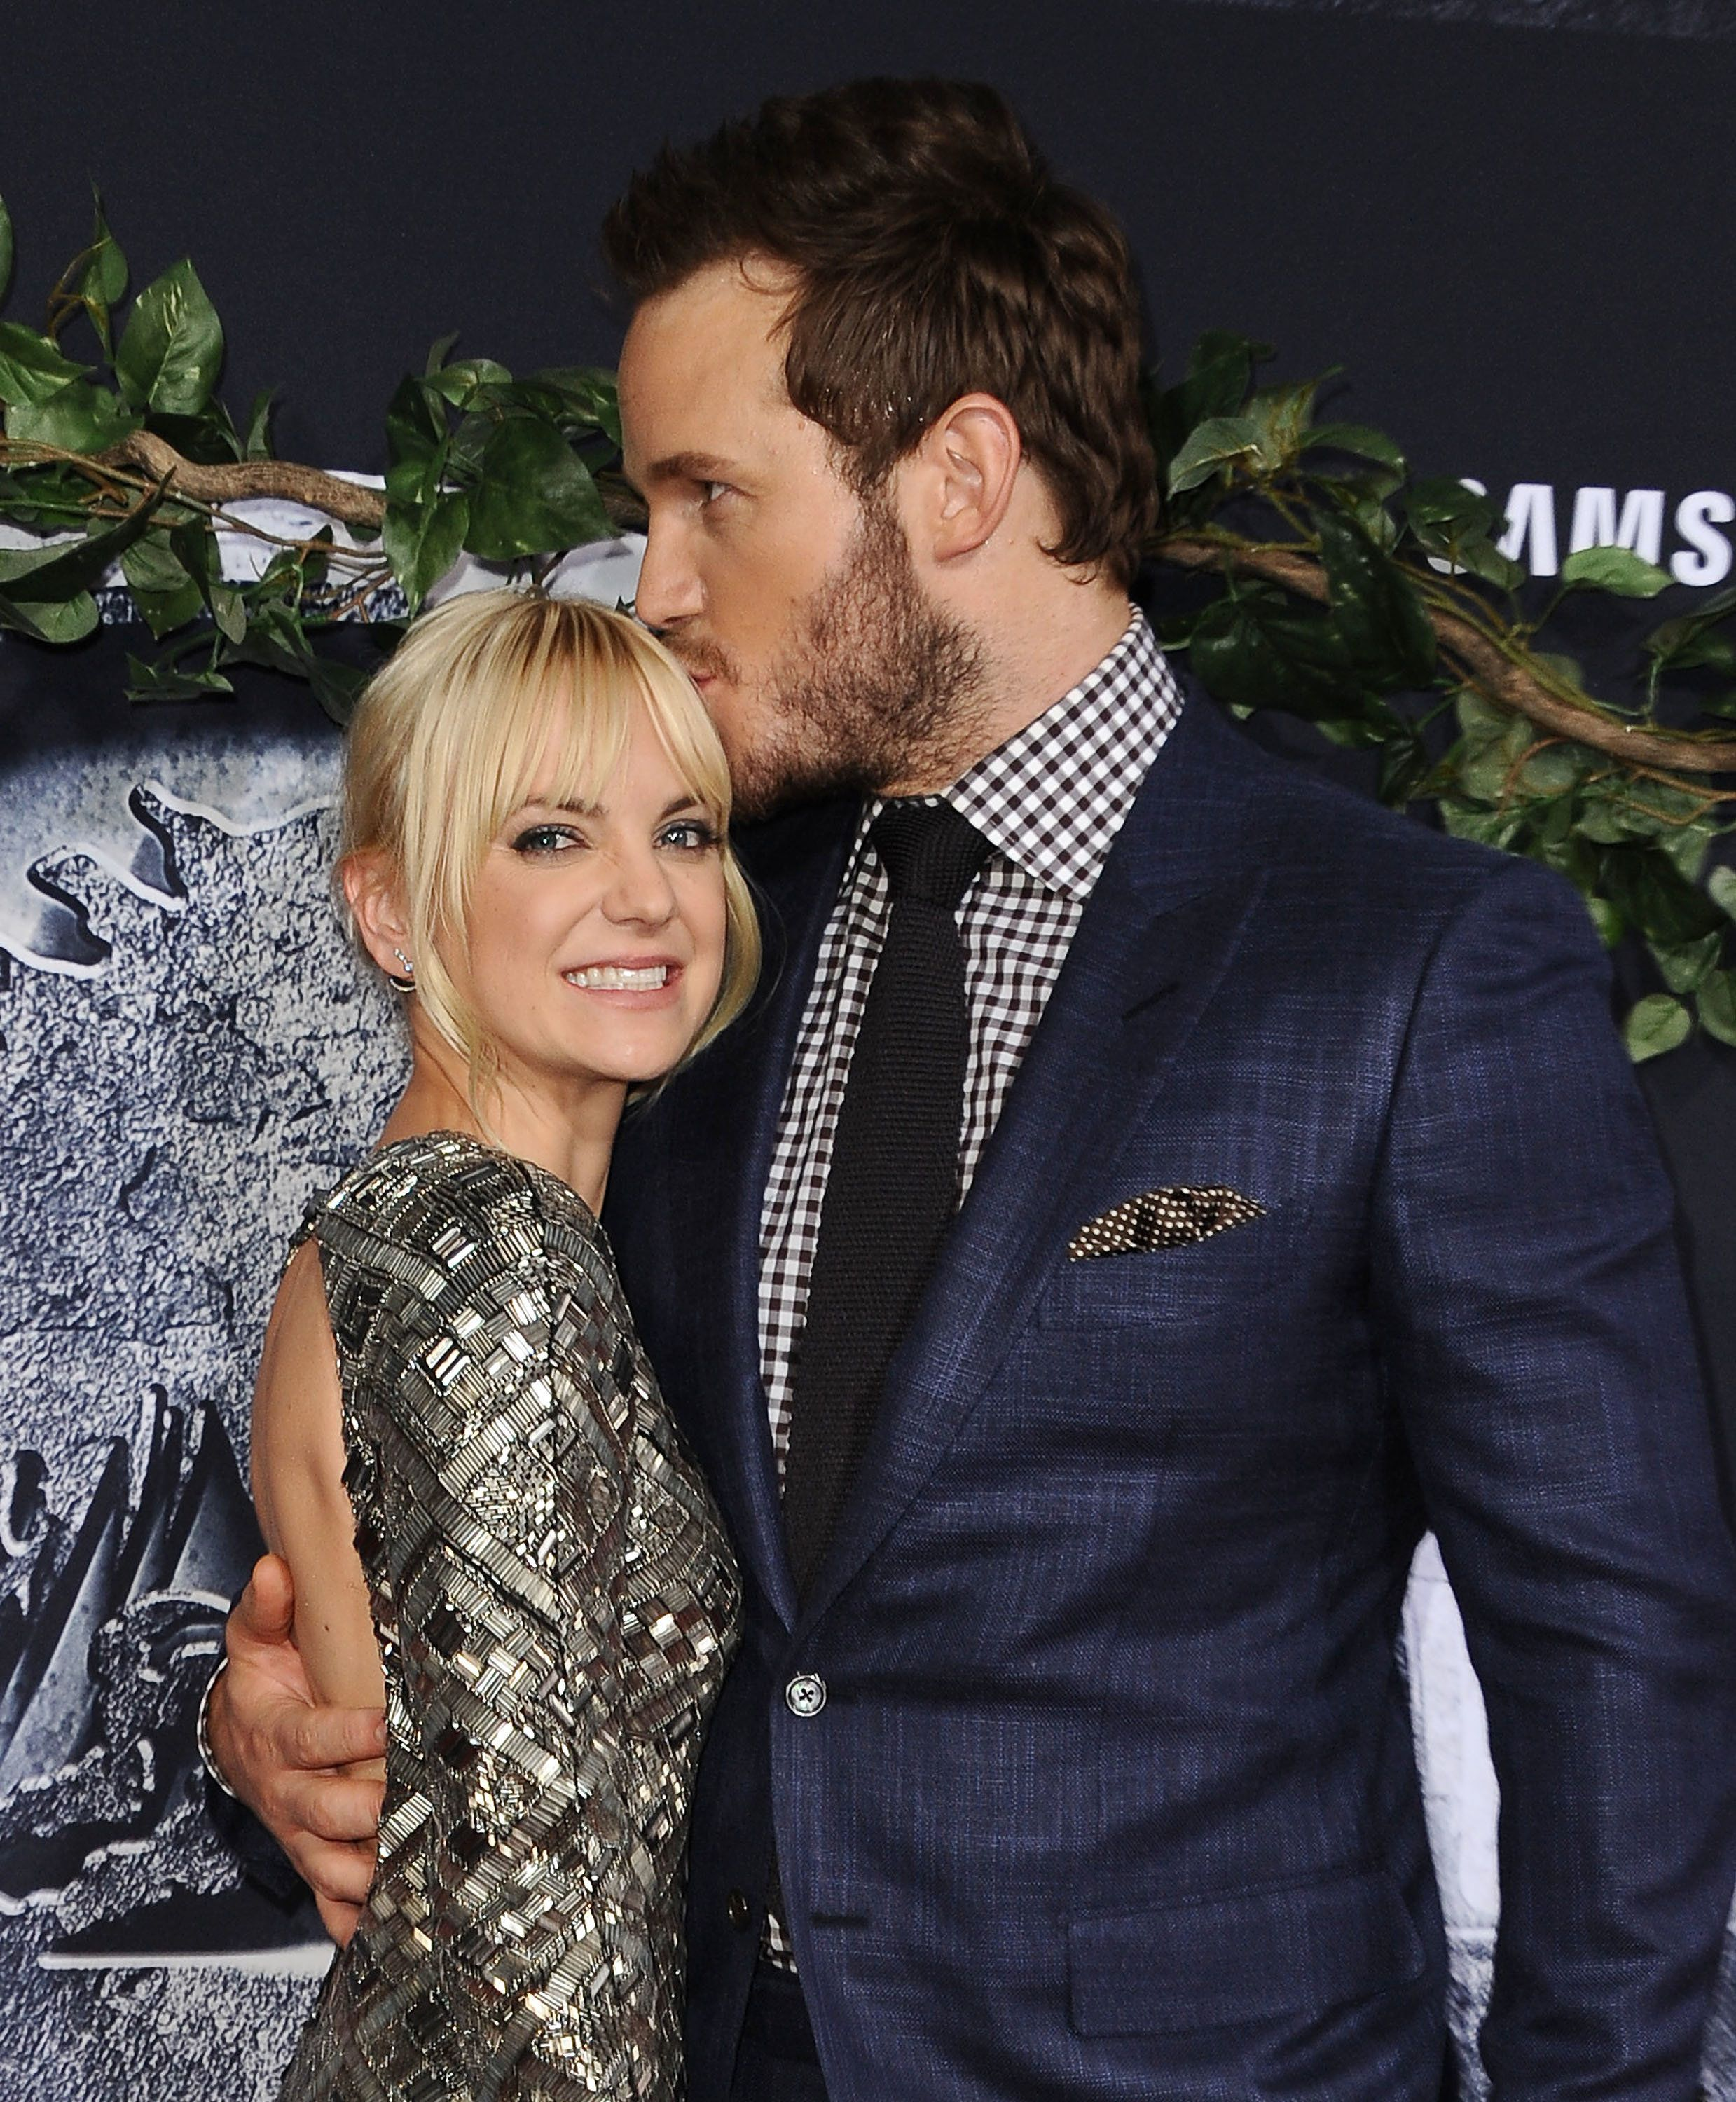 HOLLYWOOD, CA - JUNE 09:  Actress Anna Faris and actor Chris Pratt attend the premiere of 'Jurassic World' at Dolby Theatre on June 9, 2015 in Hollywood, California.  (Photo by Jason LaVeris/FilmMagic)